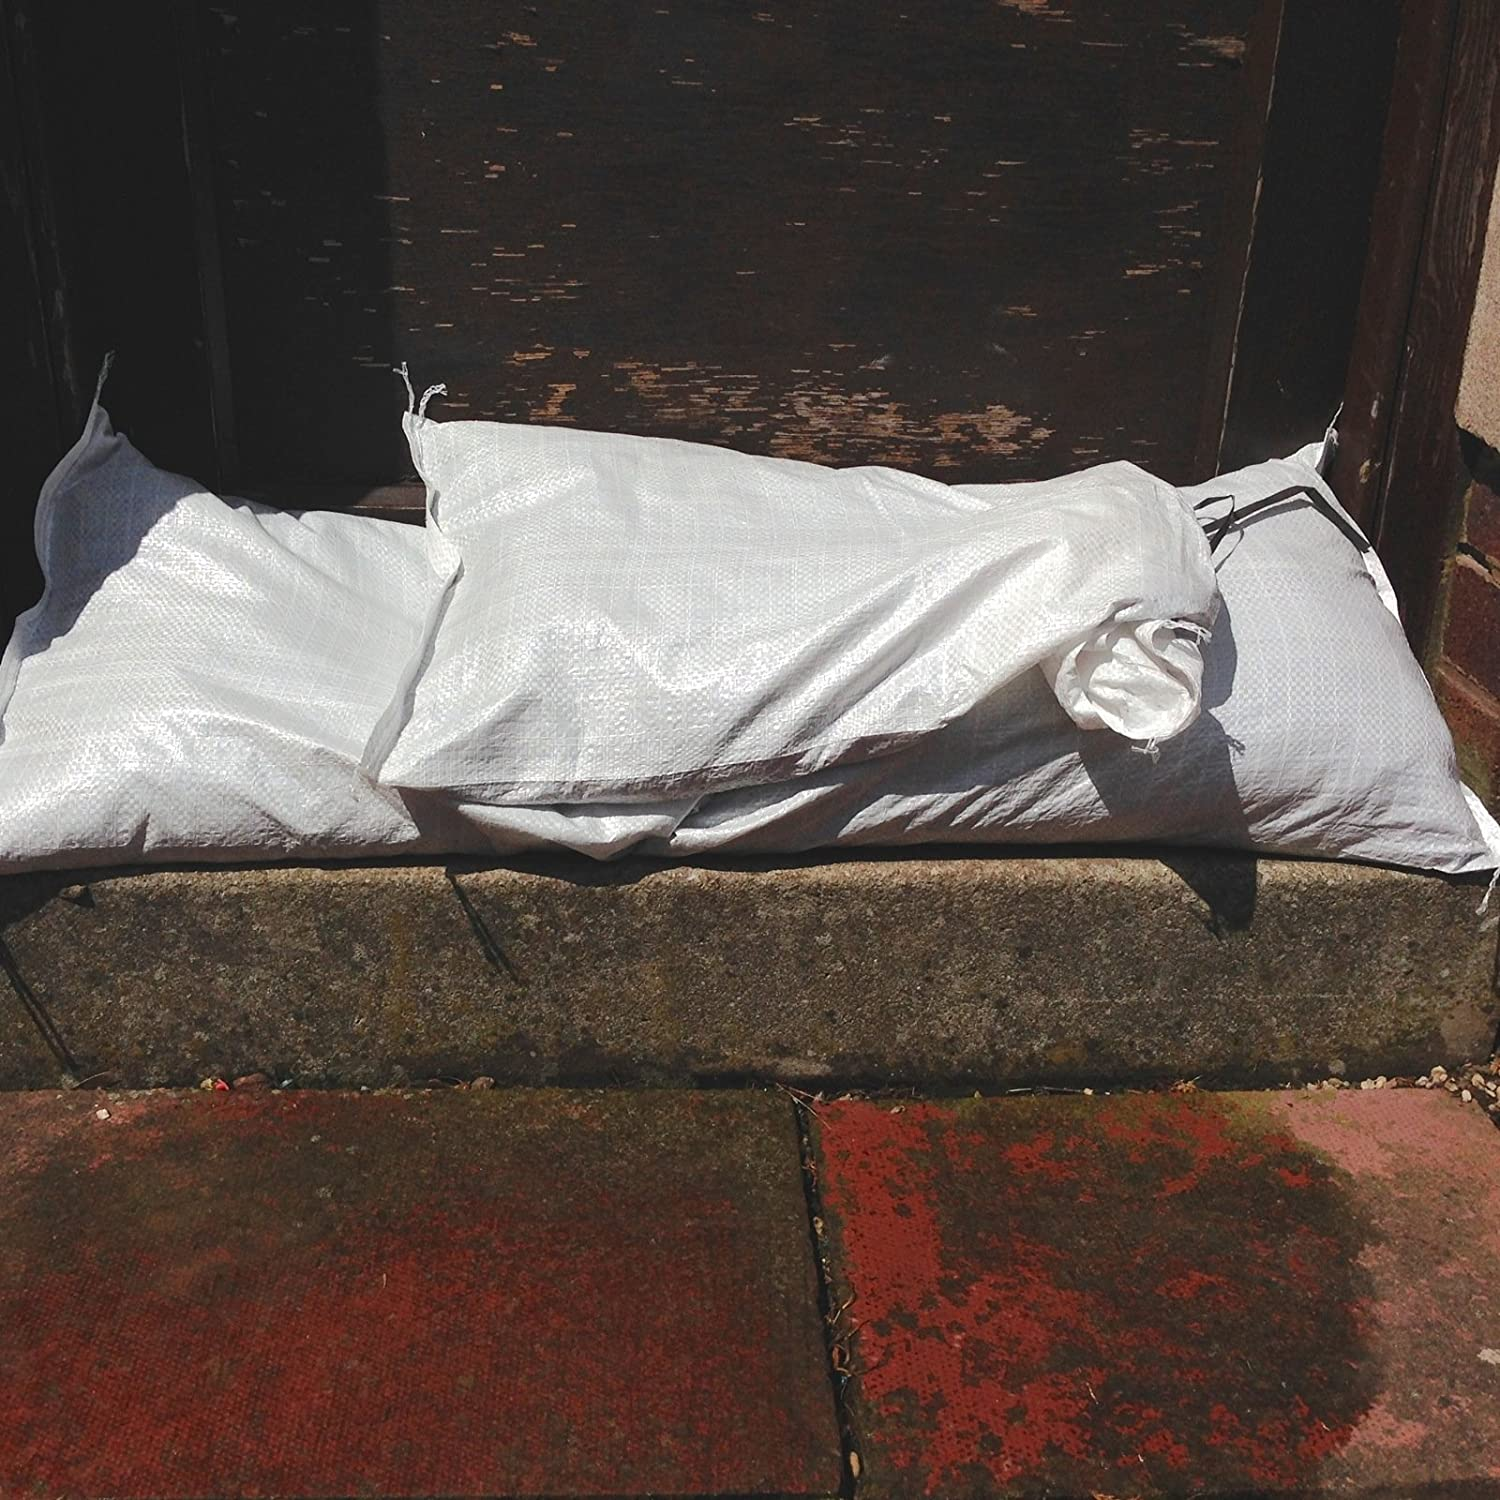 15x Yuzet White Woven Polypropylene Sandbags for Flood Defence